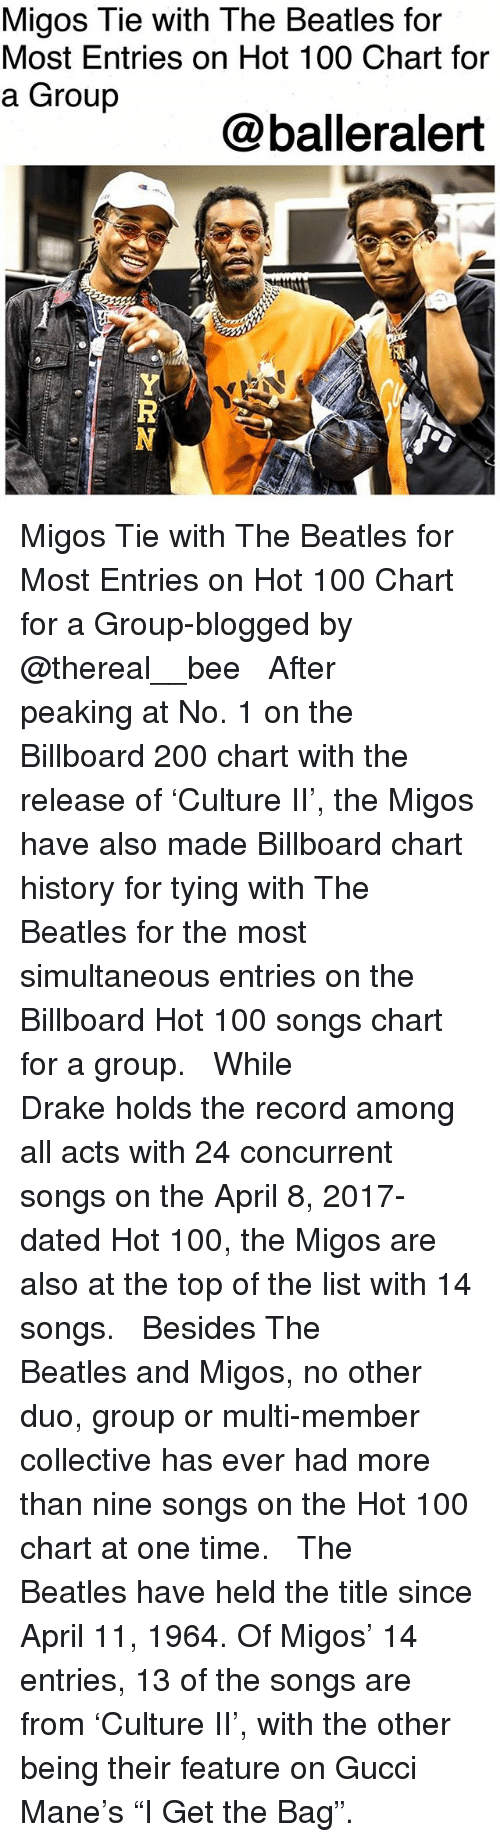 """Anaconda, Bailey Jay, and Billboard: Migos Tie with The Beatles for  Most Entries on Hot 100 Chart for  a Group  @balleralert Migos Tie with The Beatles for Most Entries on Hot 100 Chart for a Group-blogged by @thereal__bee ⠀⠀⠀⠀⠀⠀⠀ ⠀⠀⠀⠀ After peaking at No. 1 on the Billboard 200 chart with the release of 'Culture II', the Migos have also made Billboard chart history for tying with The Beatles for the most simultaneous entries on the Billboard Hot 100 songs chart for a group. ⠀⠀⠀⠀⠀⠀⠀ ⠀⠀⠀⠀ While Drake holds the record among all acts with 24 concurrent songs on the April 8, 2017-dated Hot 100, the Migos are also at the top of the list with 14 songs. ⠀⠀⠀⠀⠀⠀⠀ ⠀⠀⠀⠀ Besides The Beatles and Migos, no other duo, group or multi-member collective has ever had more than nine songs on the Hot 100 chart at one time. ⠀⠀⠀⠀⠀⠀⠀ ⠀⠀⠀⠀ The Beatles have held the title since April 11, 1964. Of Migos' 14 entries, 13 of the songs are from 'Culture II', with the other being their feature on Gucci Mane's """"I Get the Bag""""."""